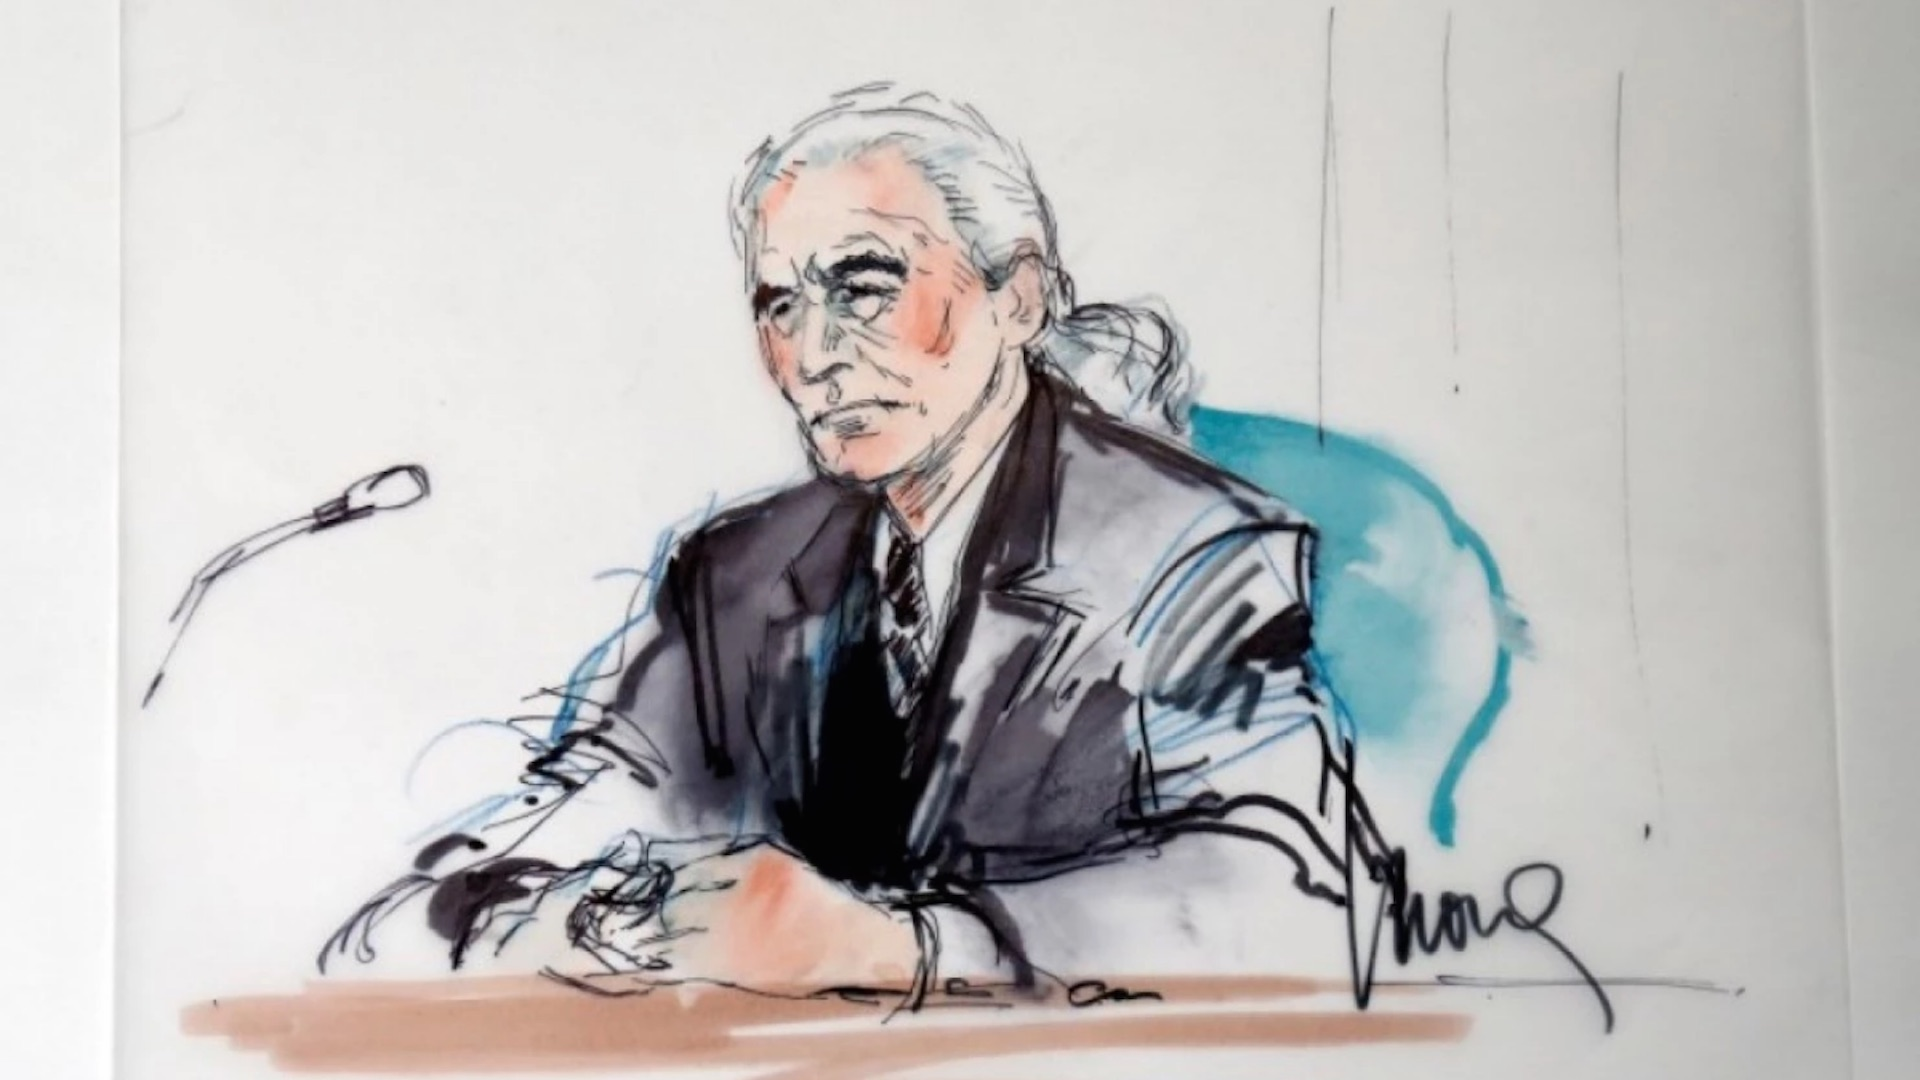 Of course Jimmy Page testified like a rock star in the 'Stairway to Heaven' trial